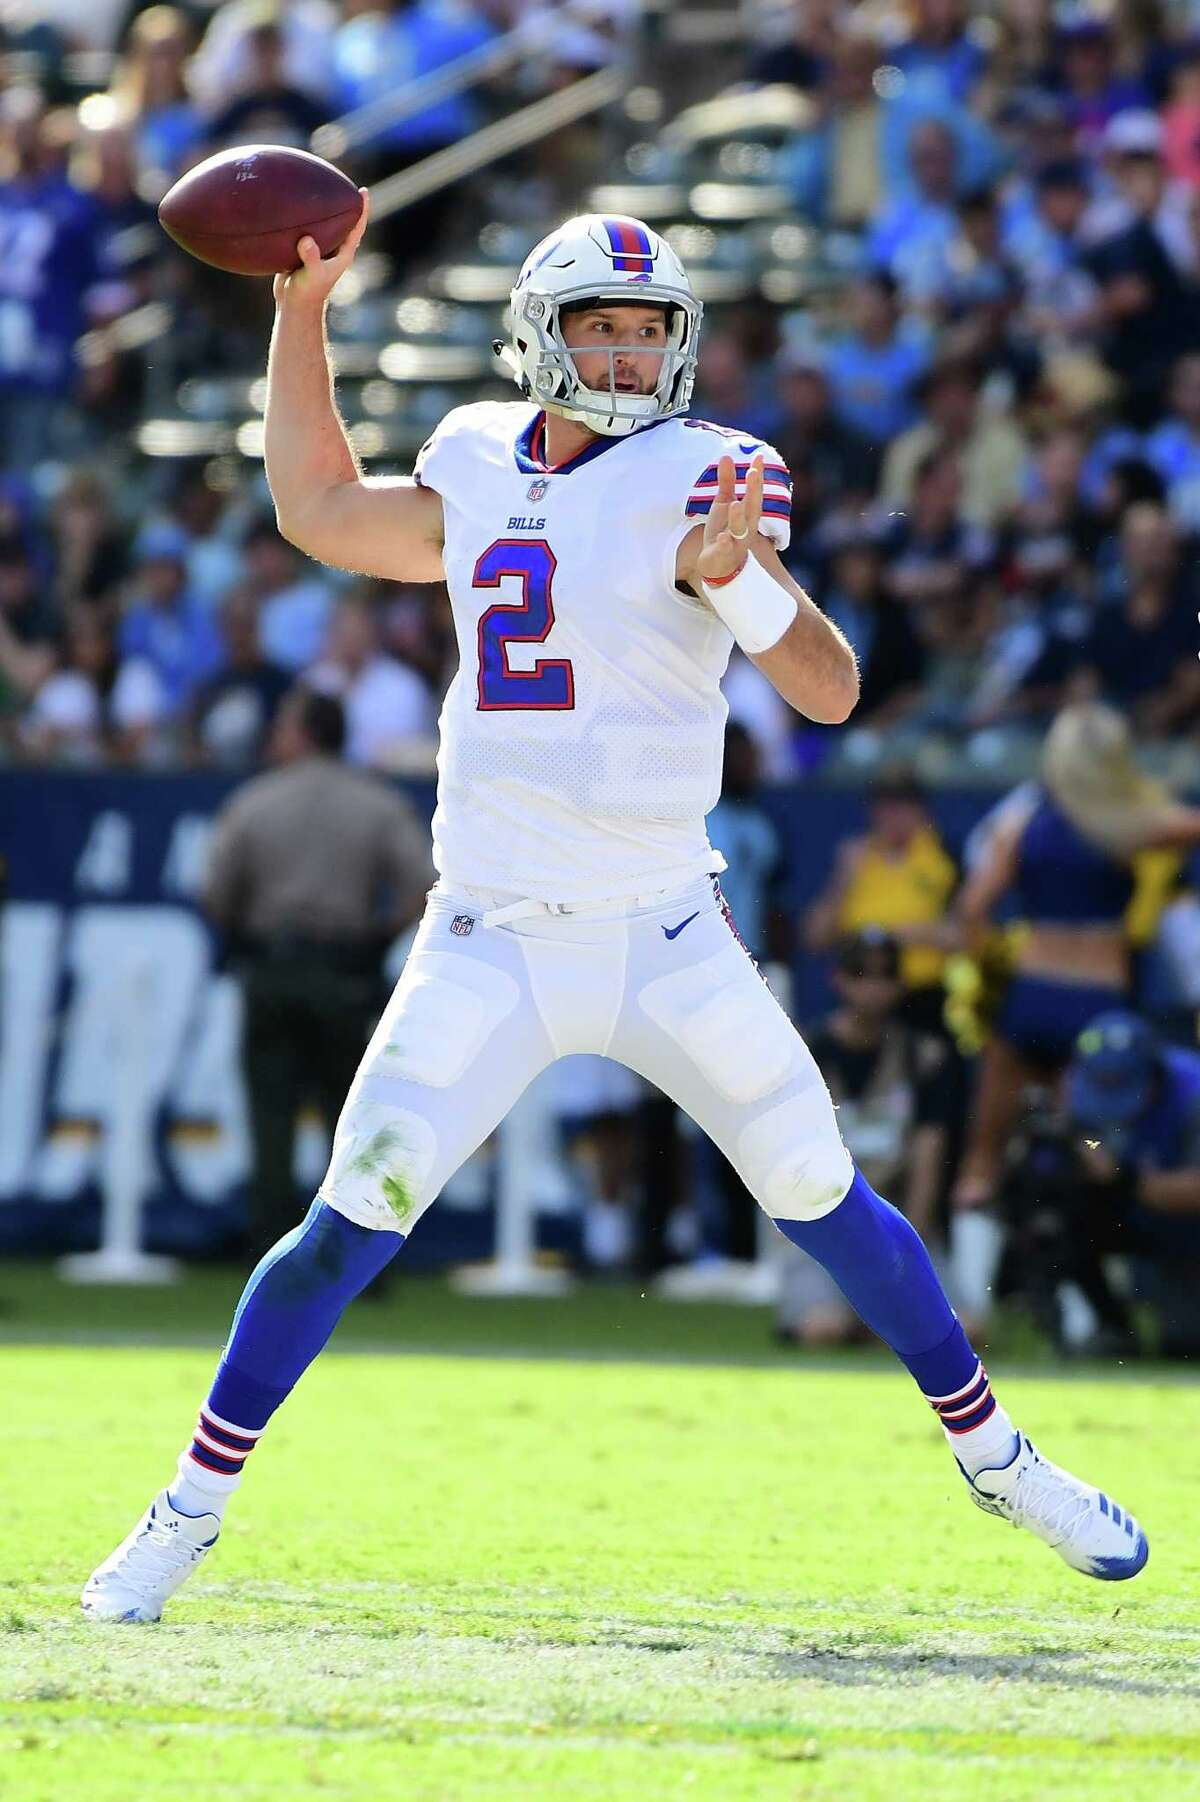 CARSON, CA - NOVEMBER 19: Nathan Peterman #2 of the Buffalo Bills throws a pass during the first quarter of the game against the Los Angeles Chargers at the StubHub Center on November 19, 2017 in Carson, California. (Photo by Harry How/Getty Images) ORG XMIT: 700070751